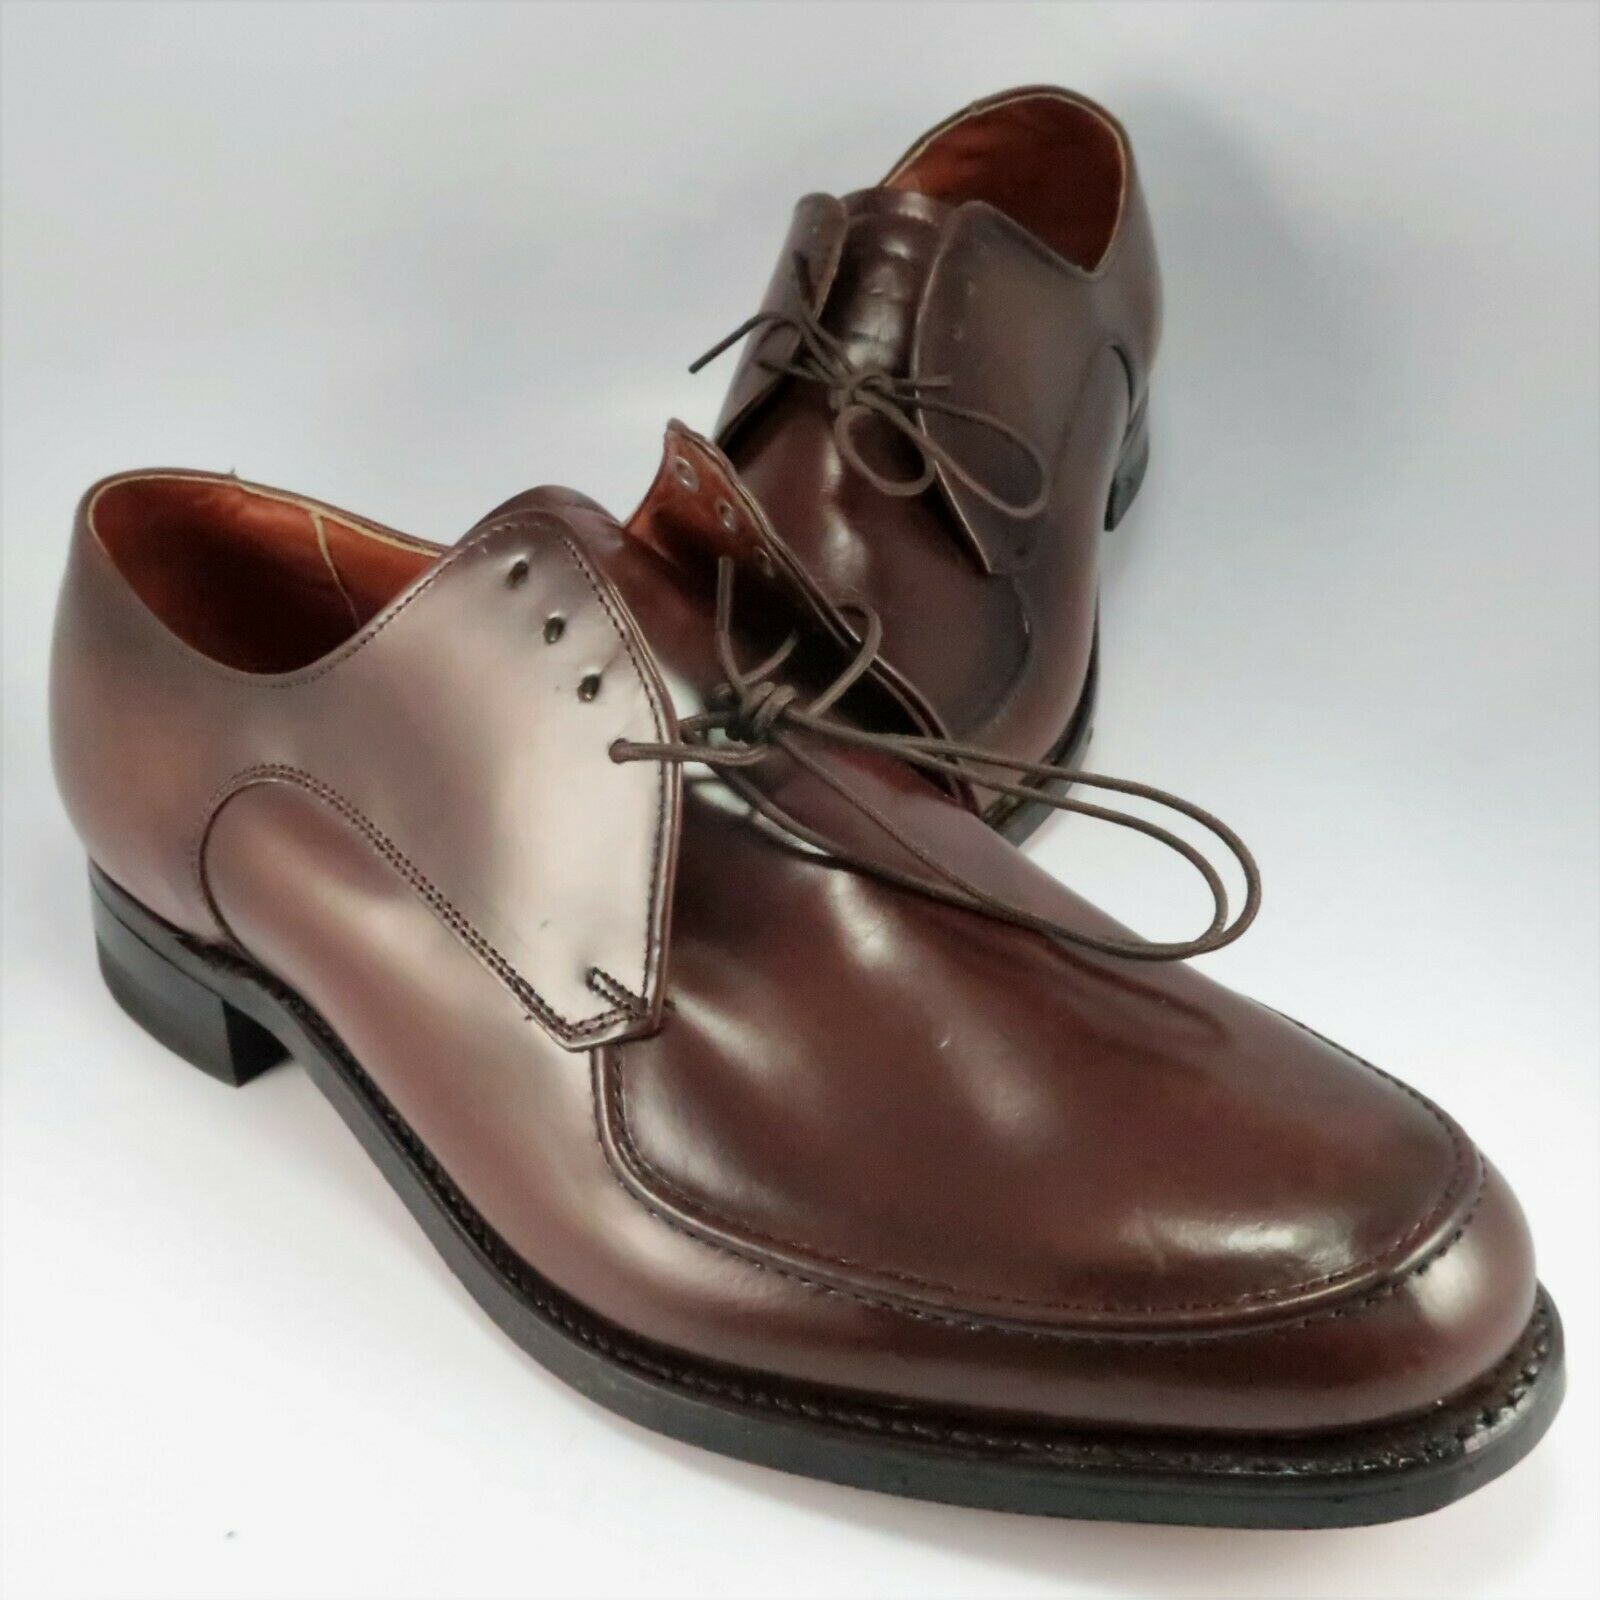 NEW Walk Over Apron-Toe Oxfords Mens Size 11.5D Brown Leather Lace-Up Dress shoes